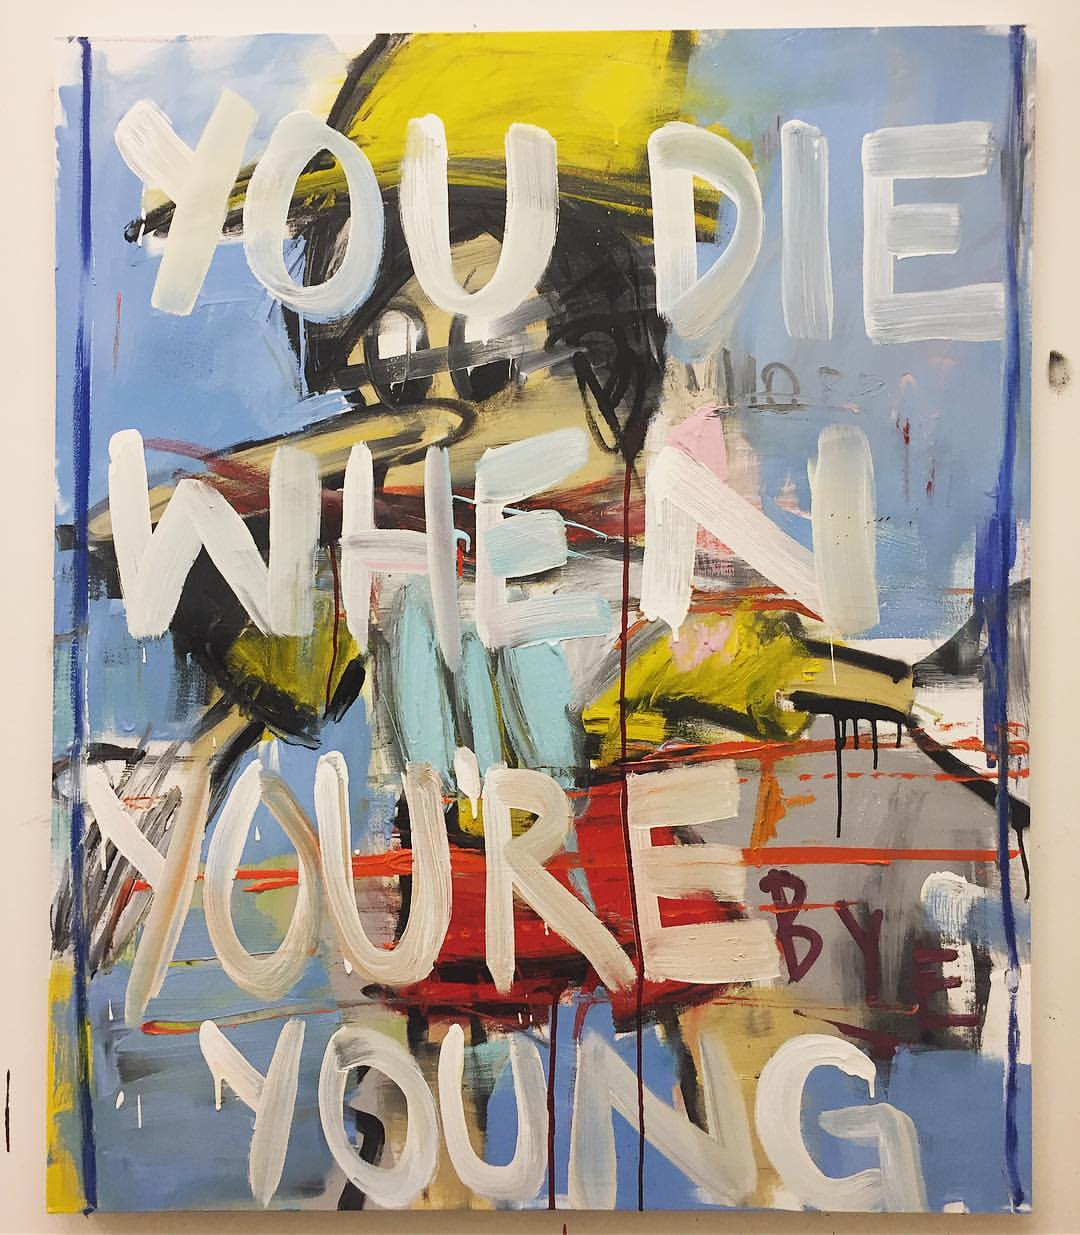 You die when you're young